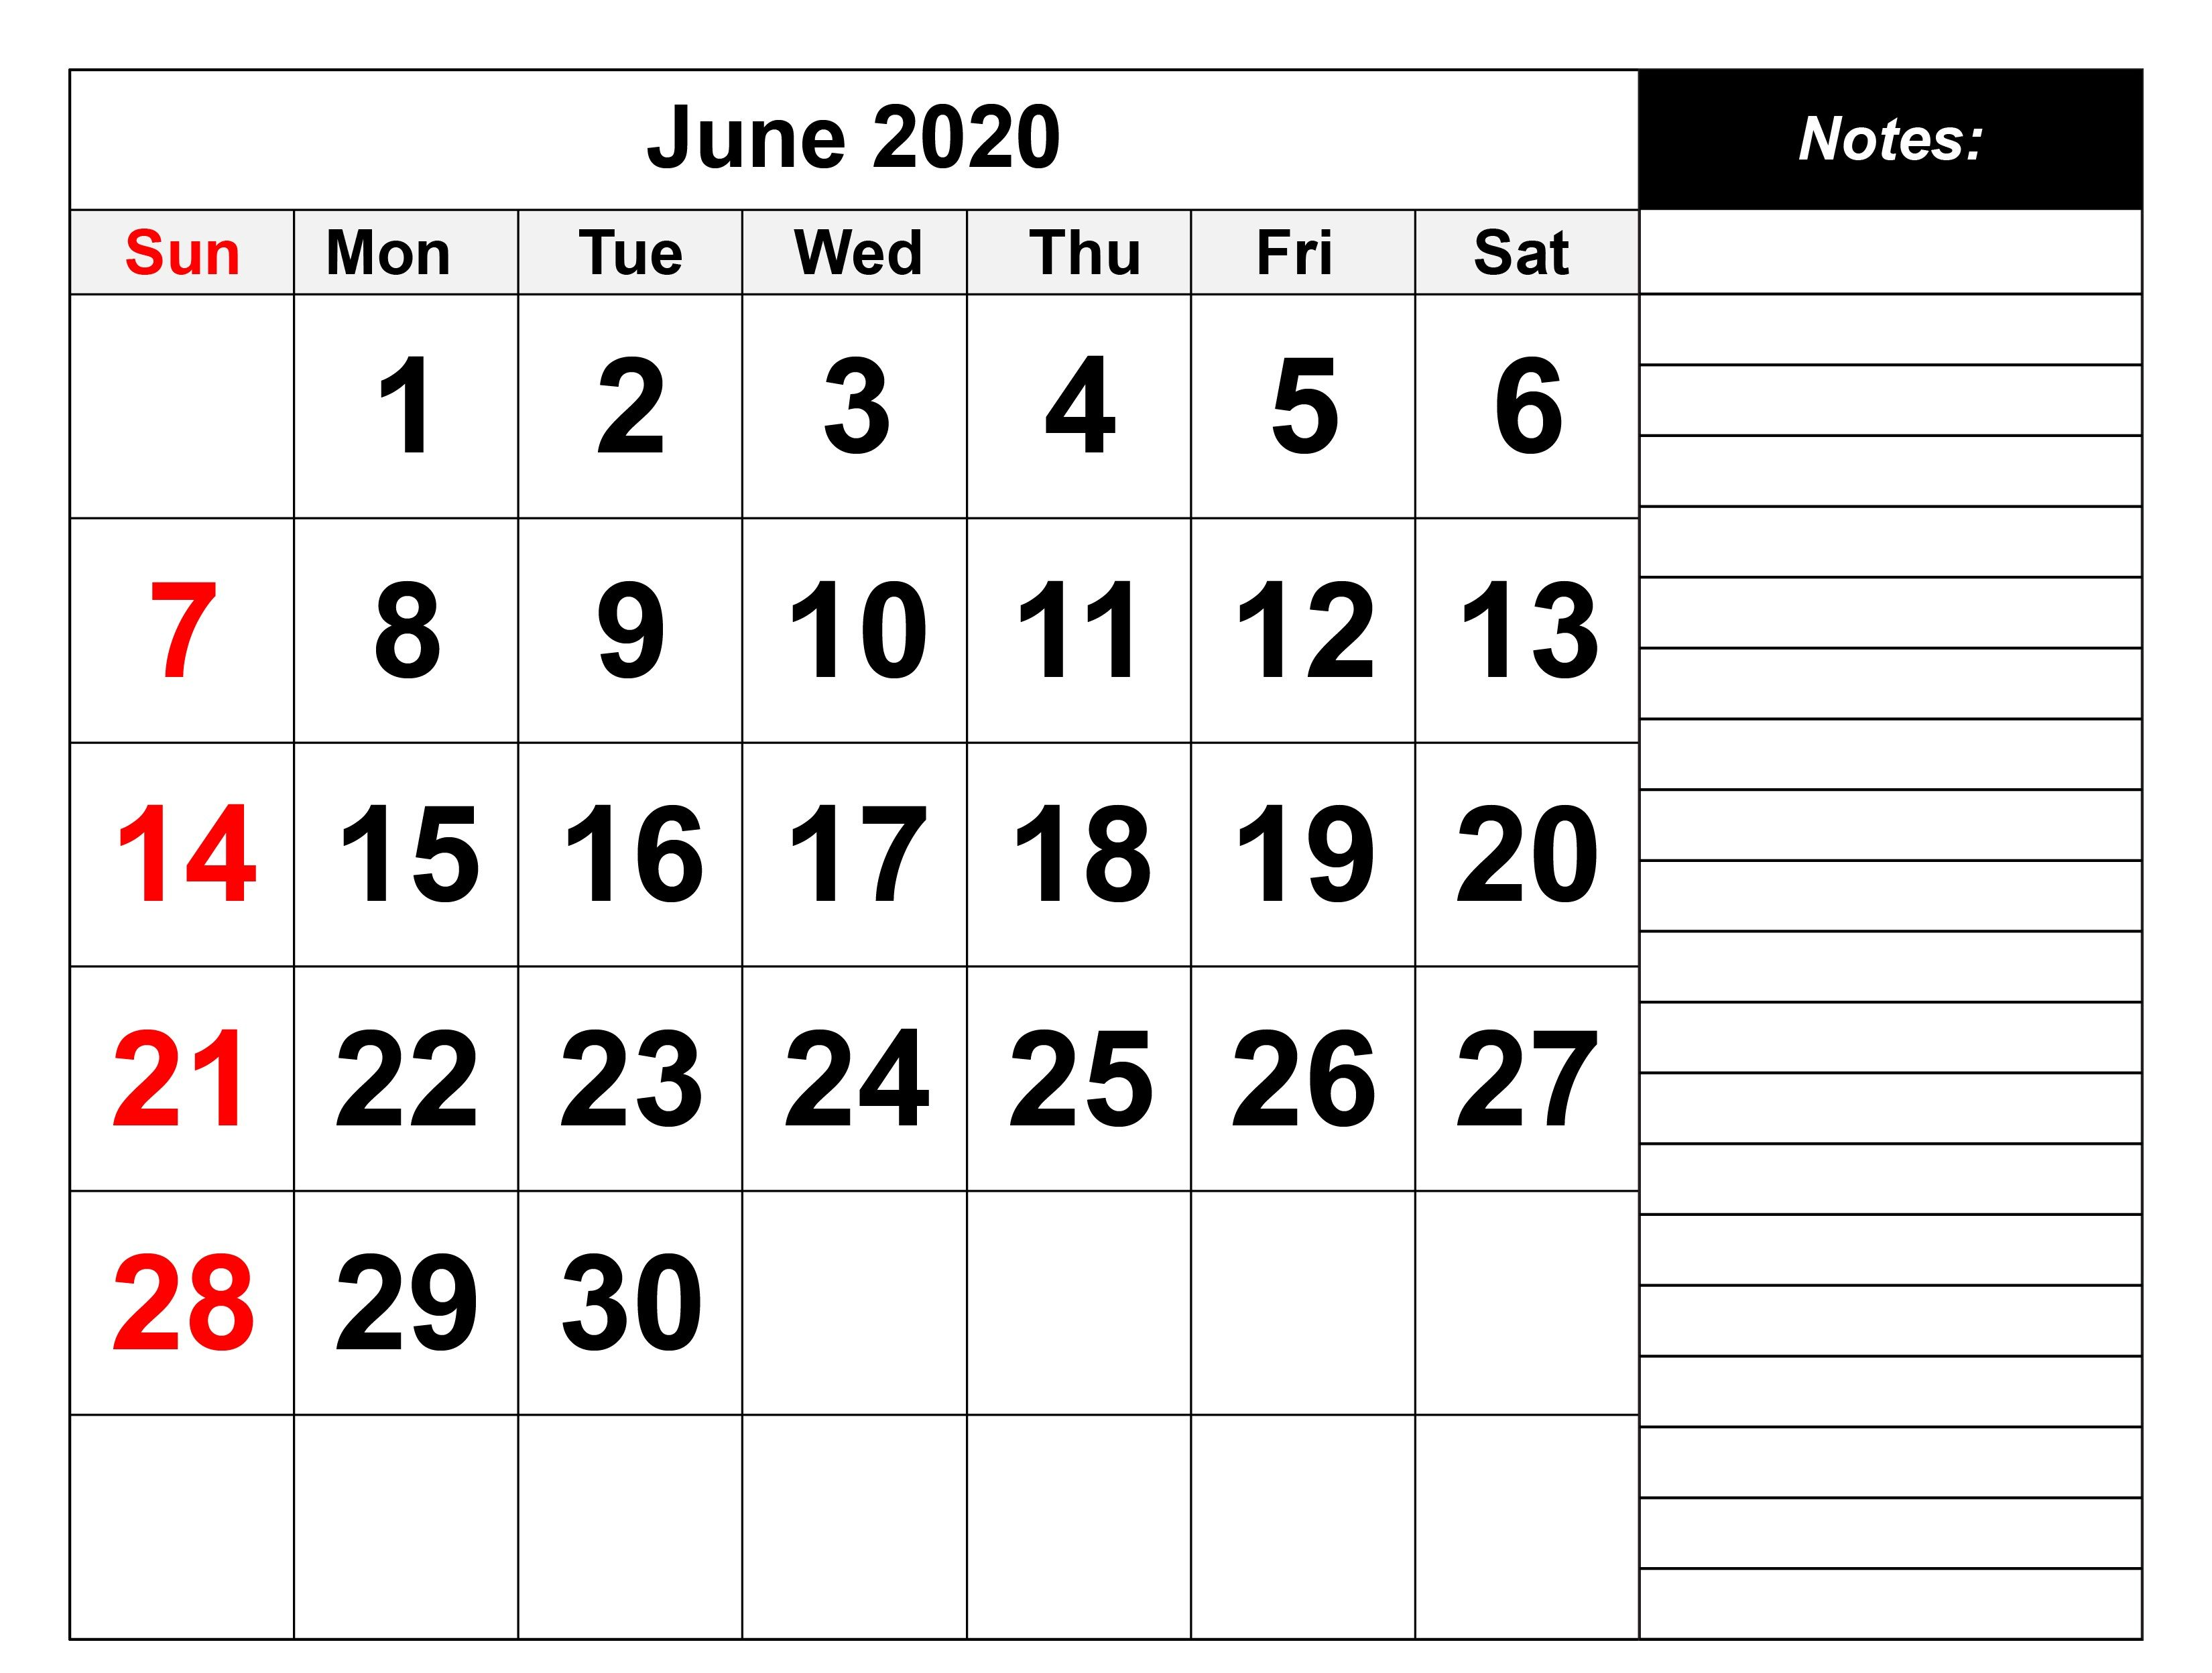 June 2020 Calendar With Holidays In 2020 2020 Calendar Template